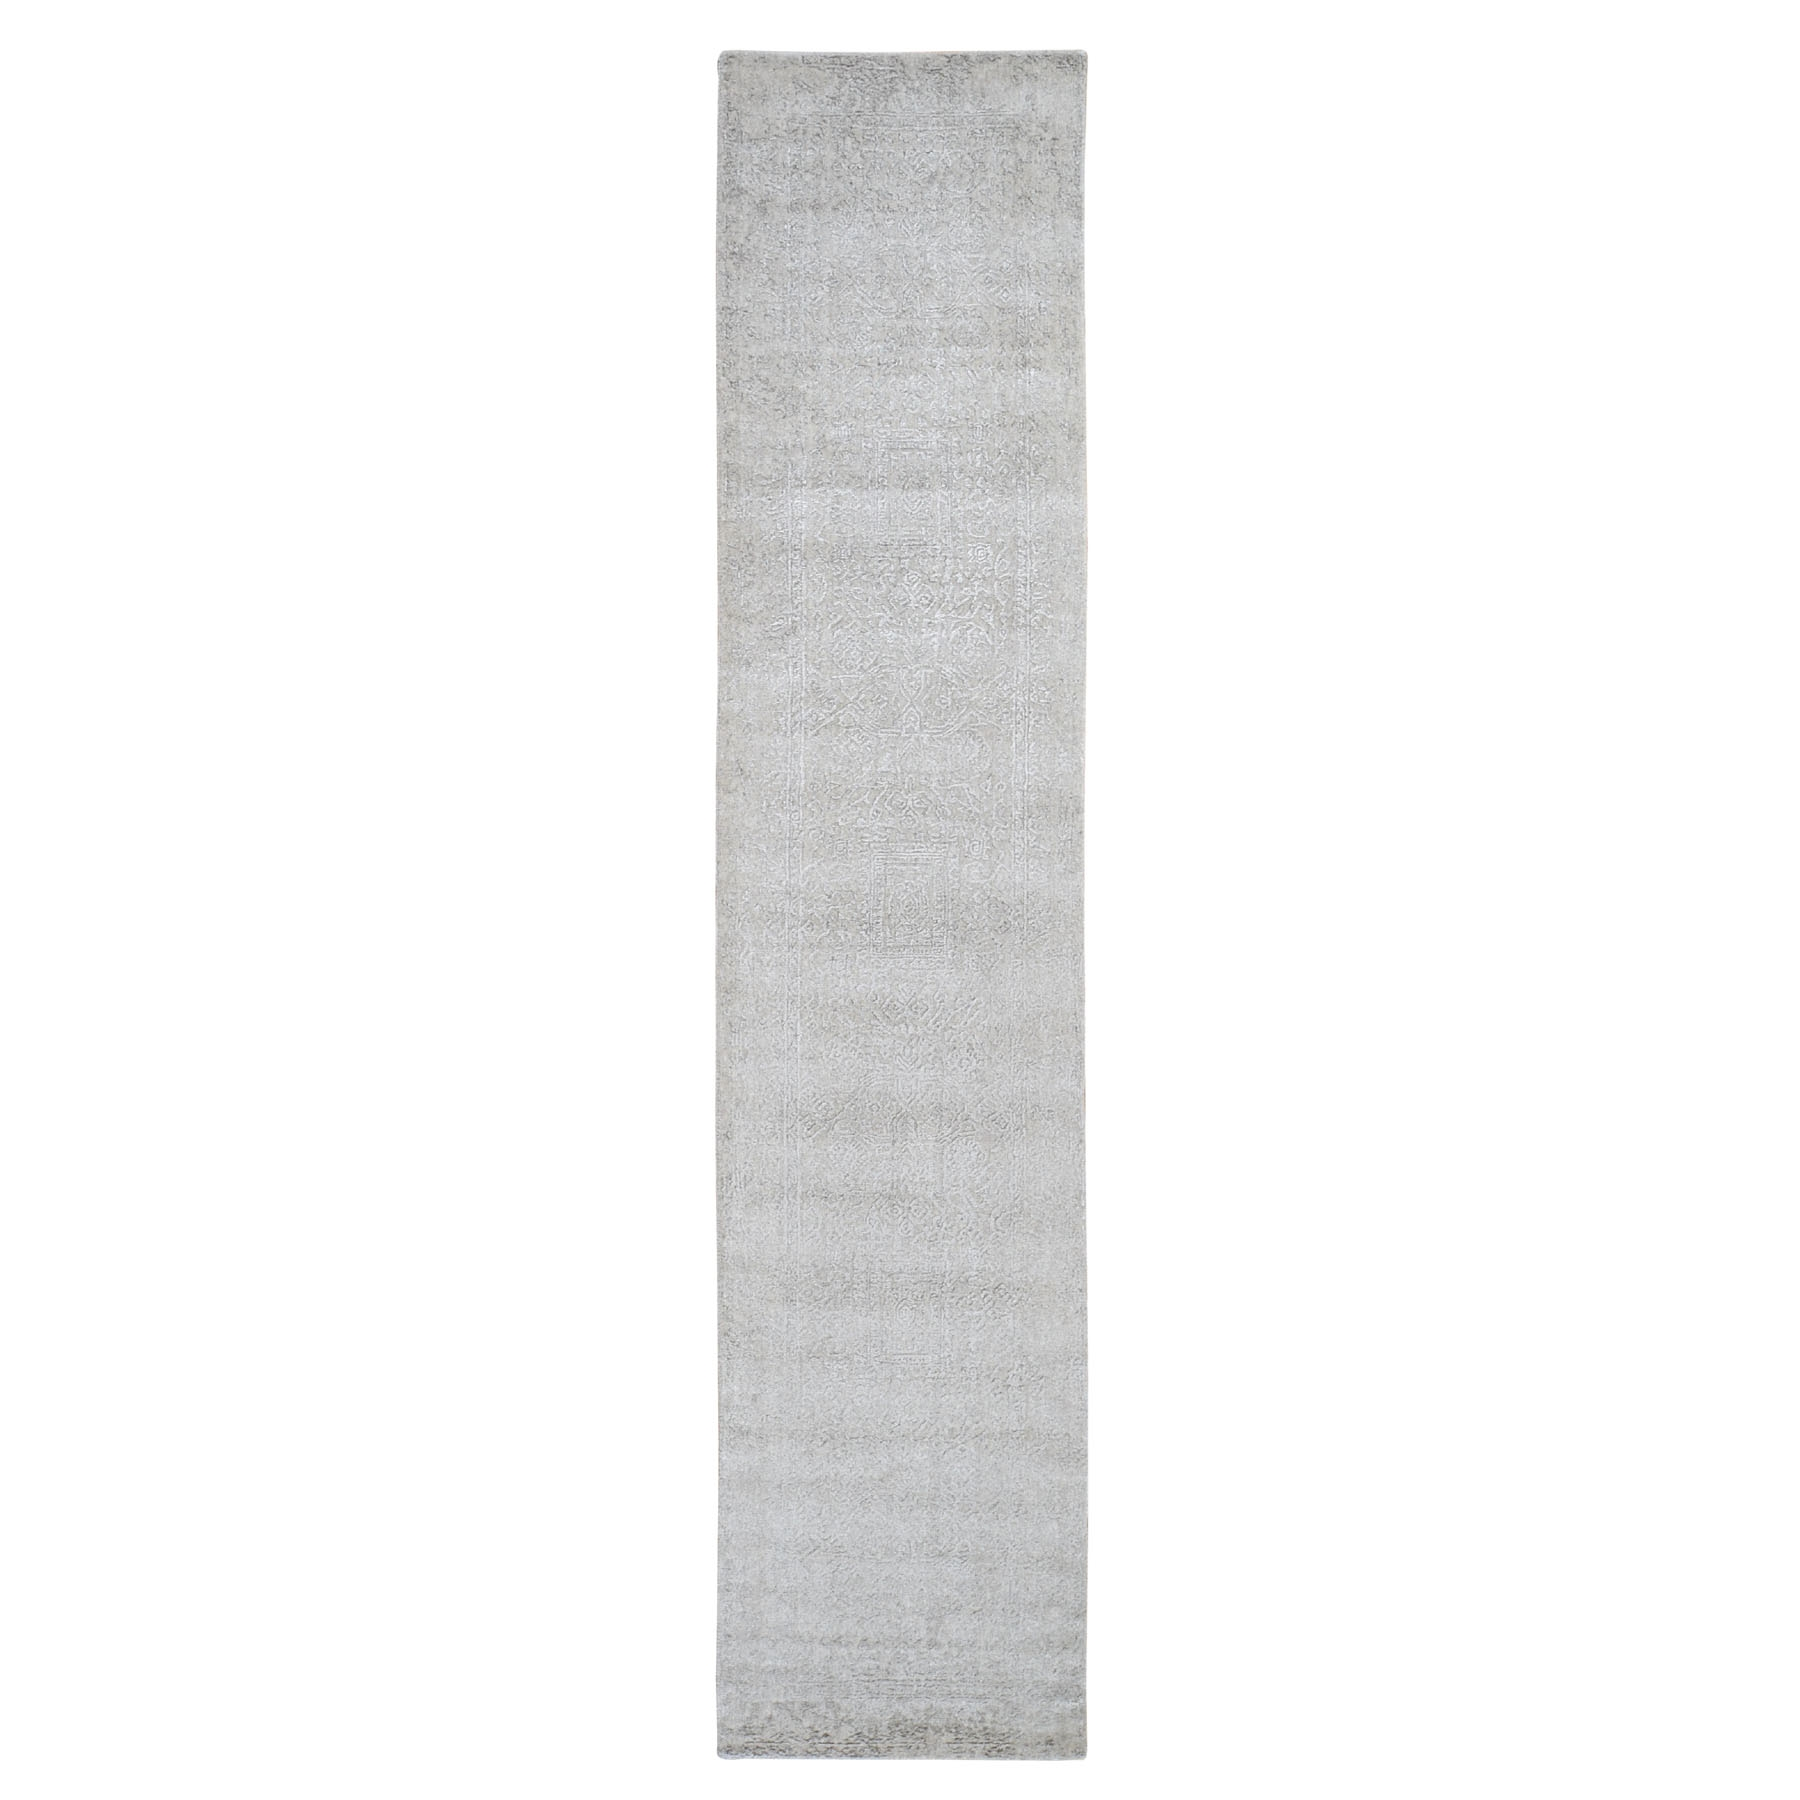 Mid Century Modern Collection Hand Loomed Grey Rug No: 0199158